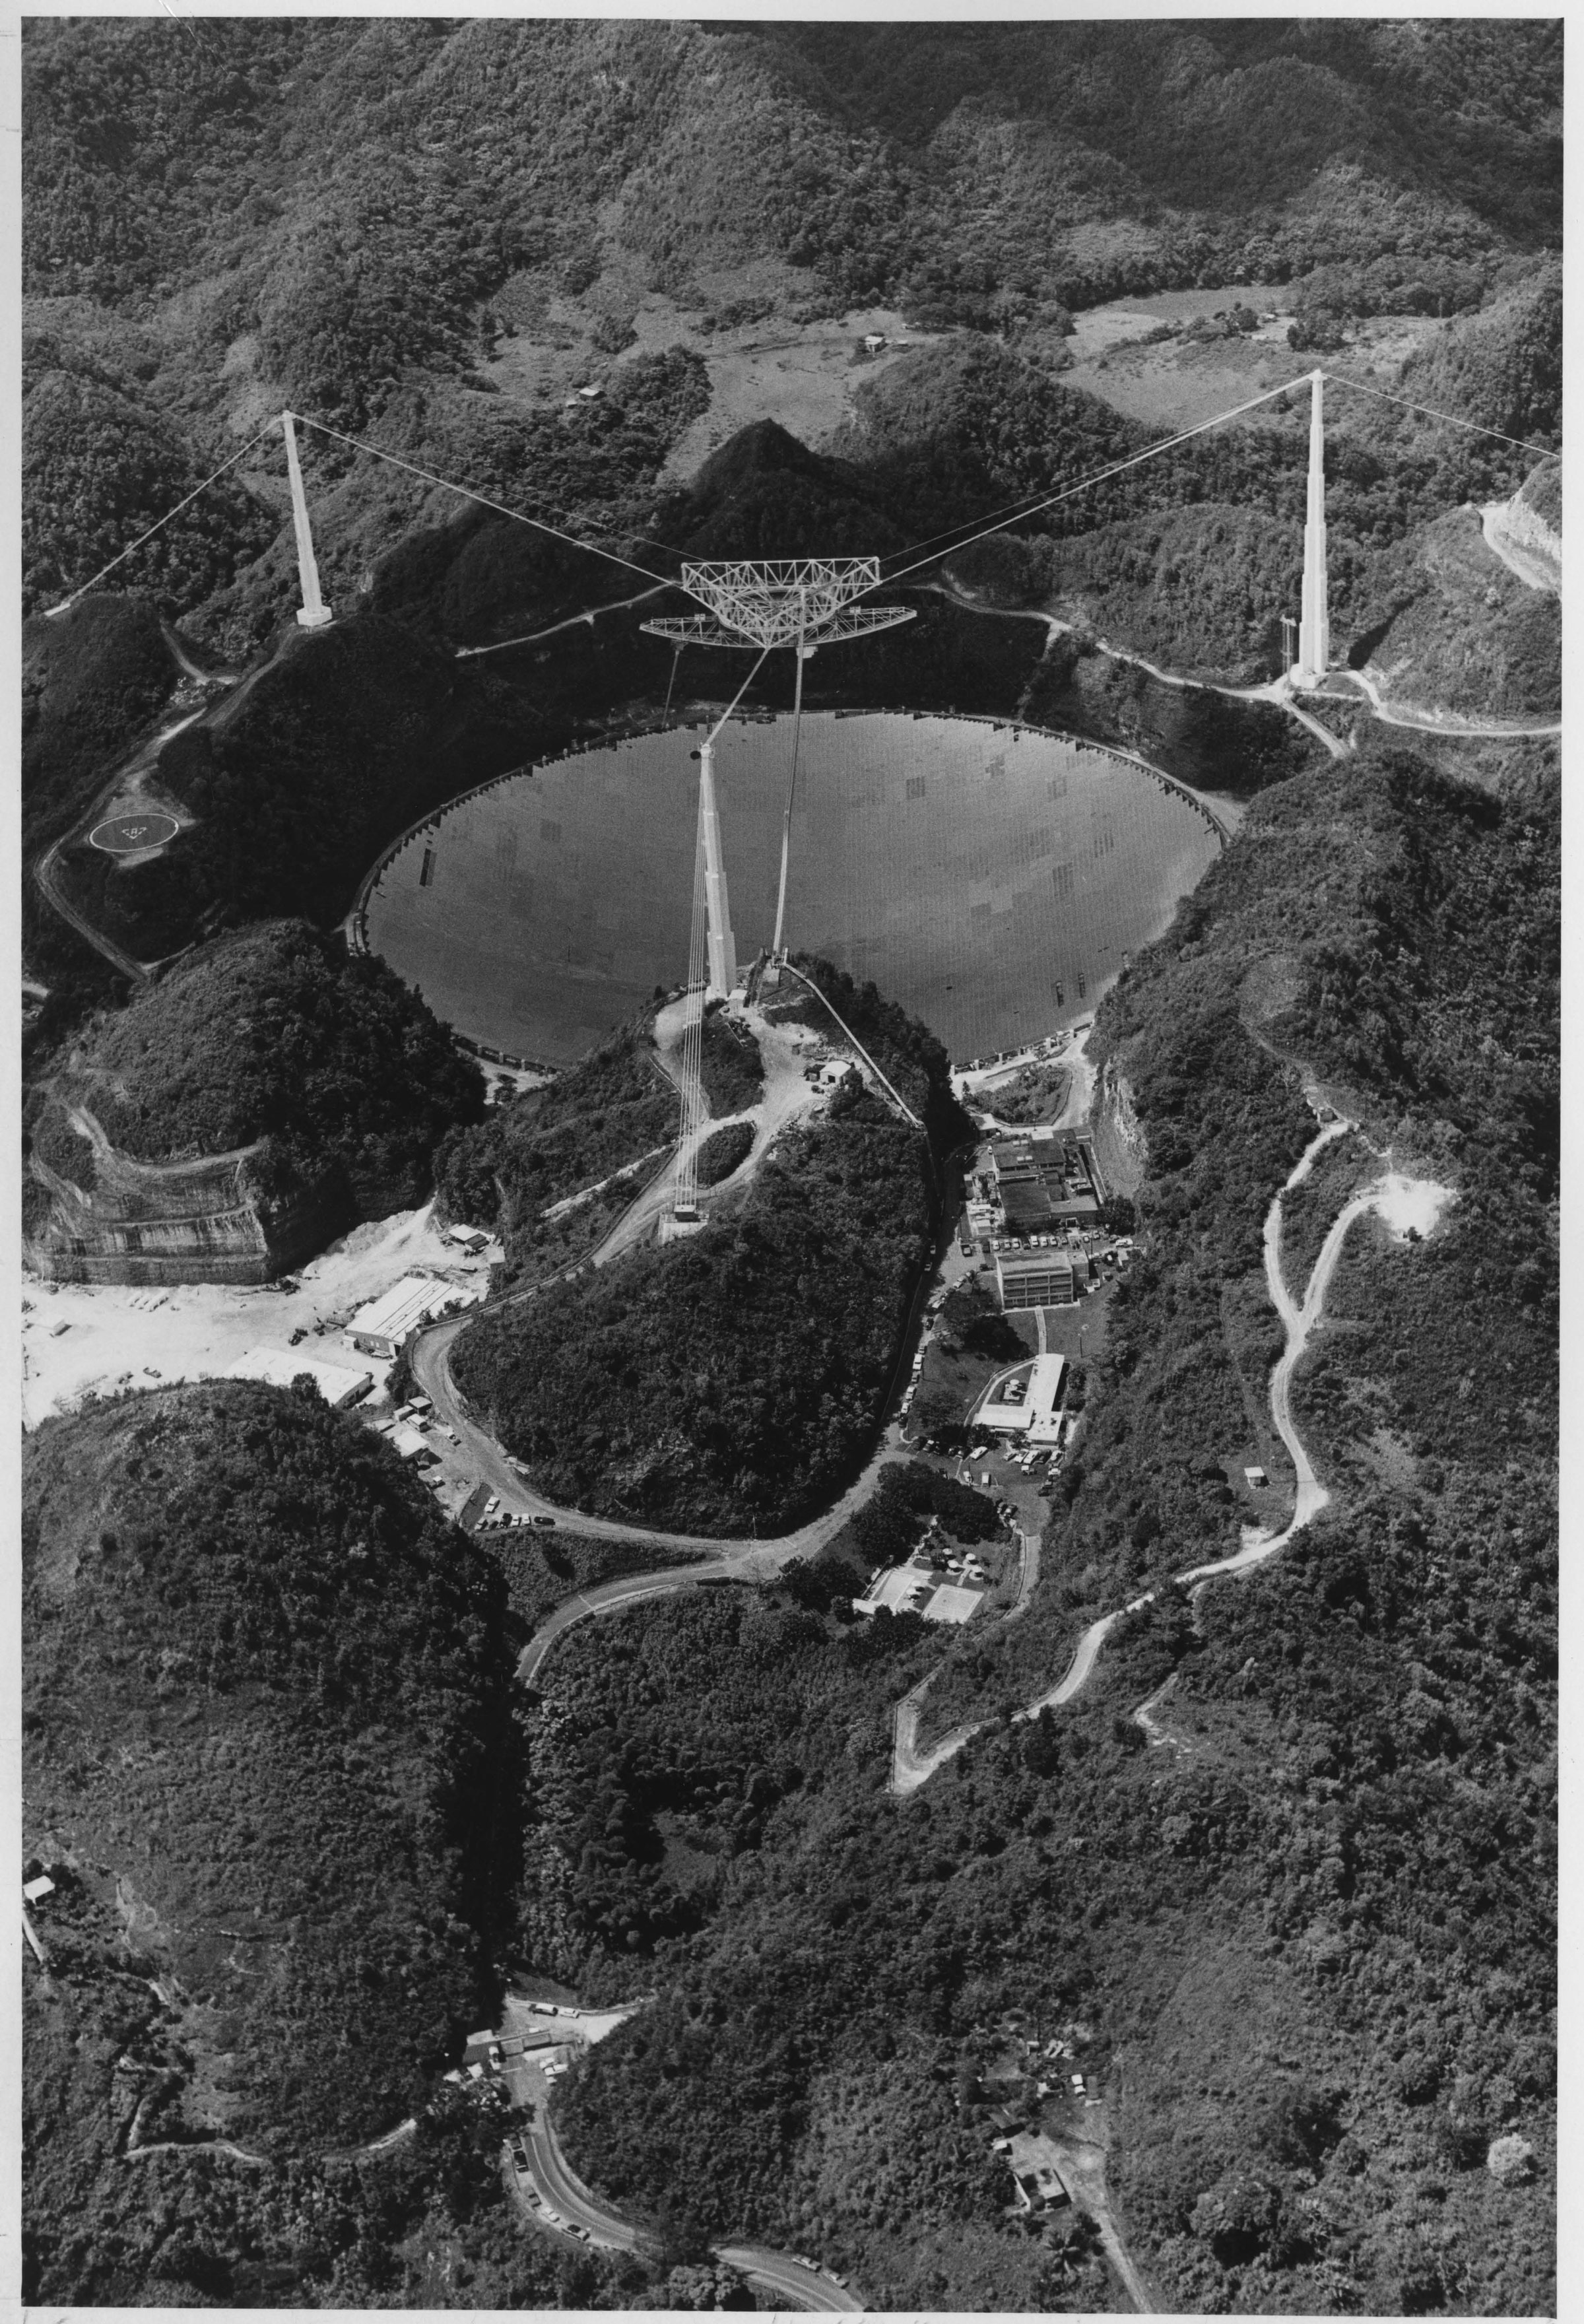 Aerial view of giant radio telescope at Arecibo Observatory